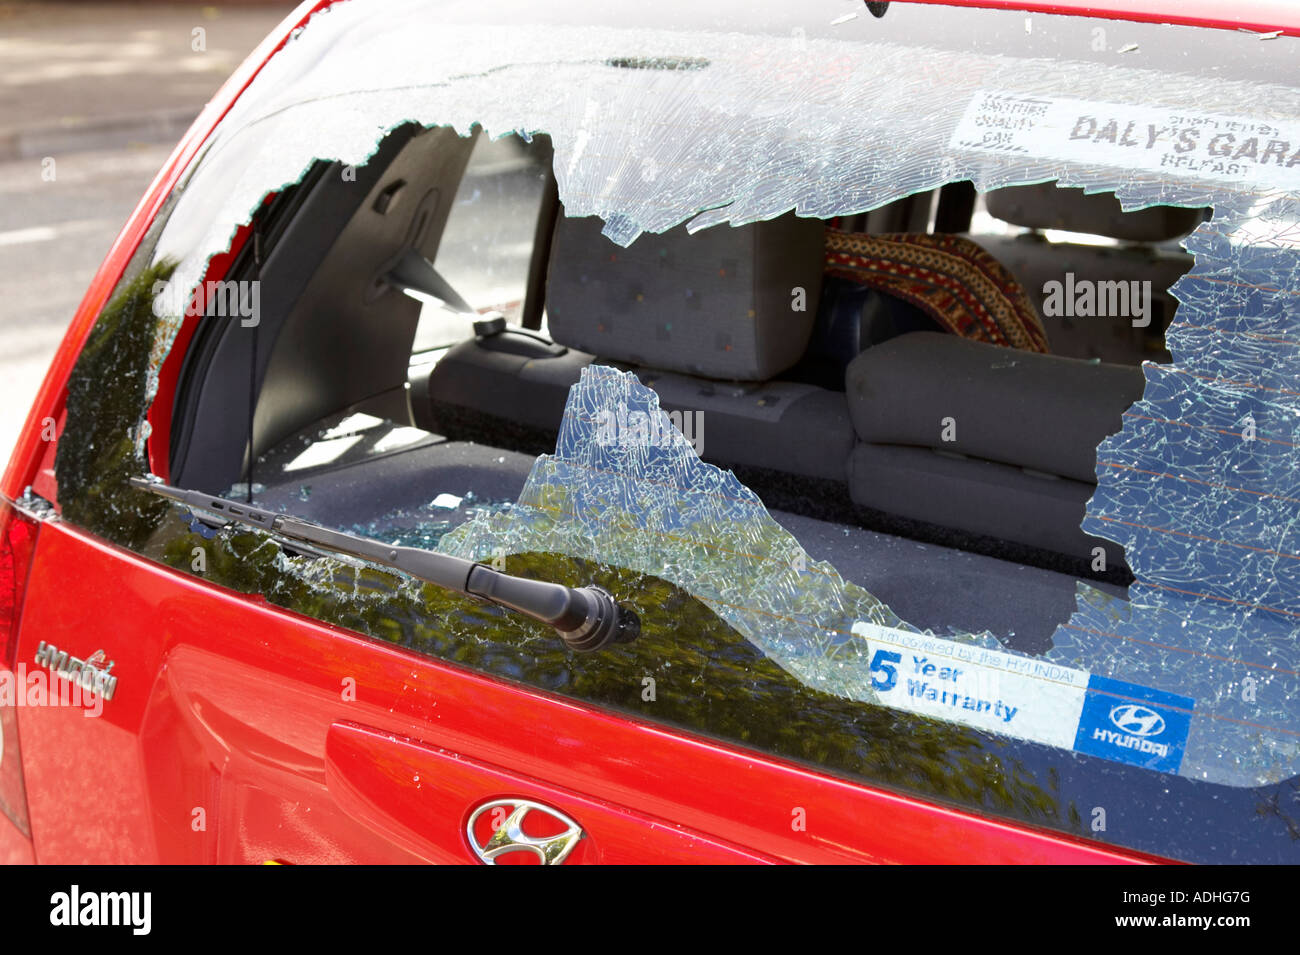 shattered rear window of red hyundai car damaged by vandals - Stock Image